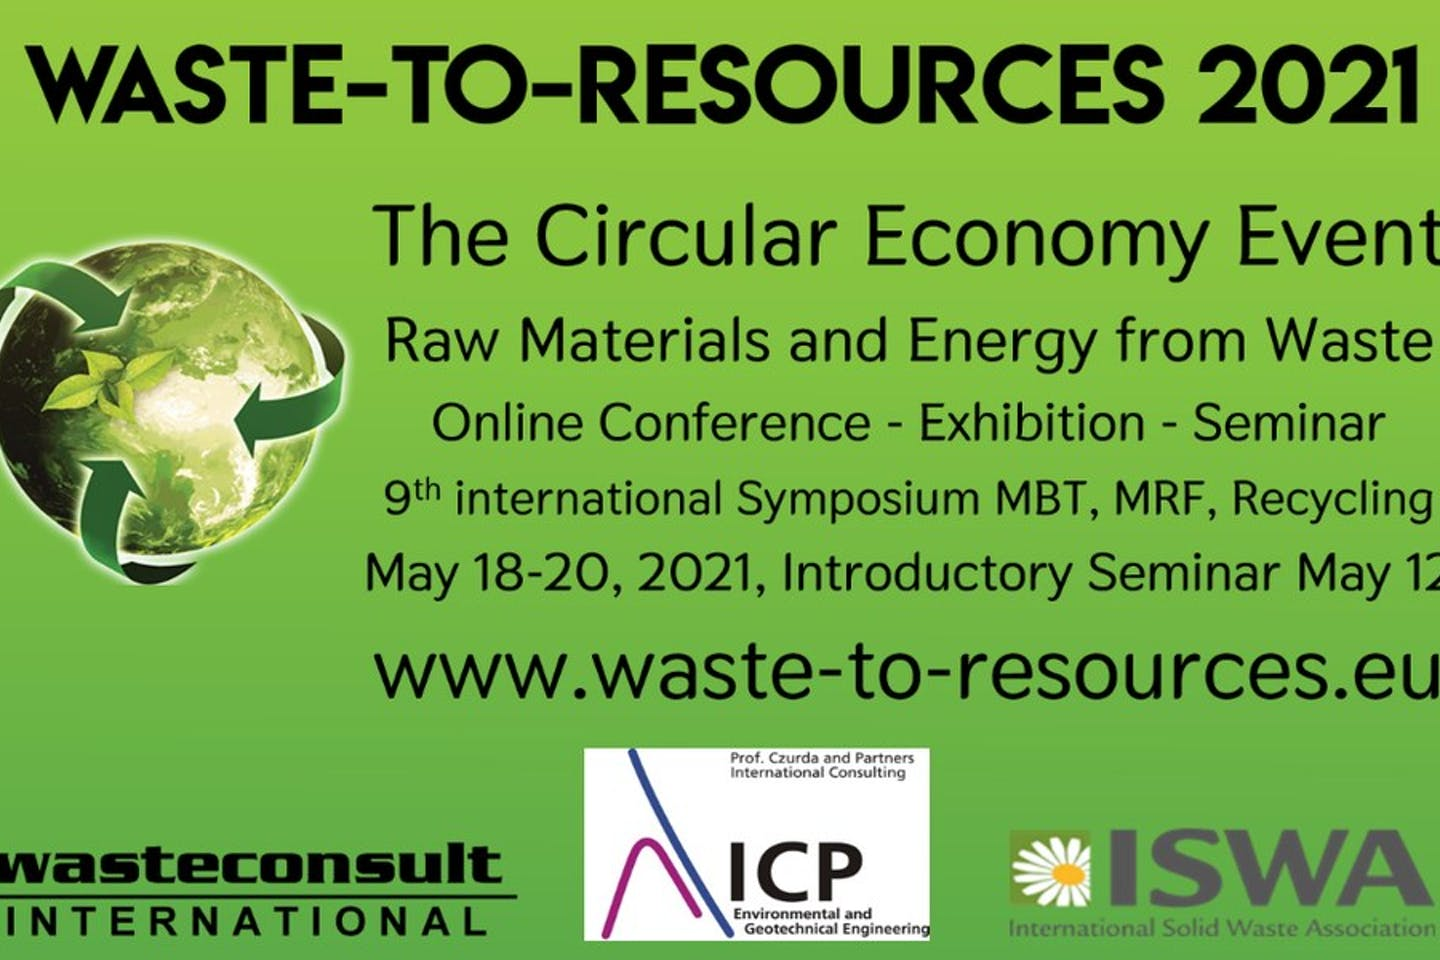 Waste-to-resources 2021: The circular economy event